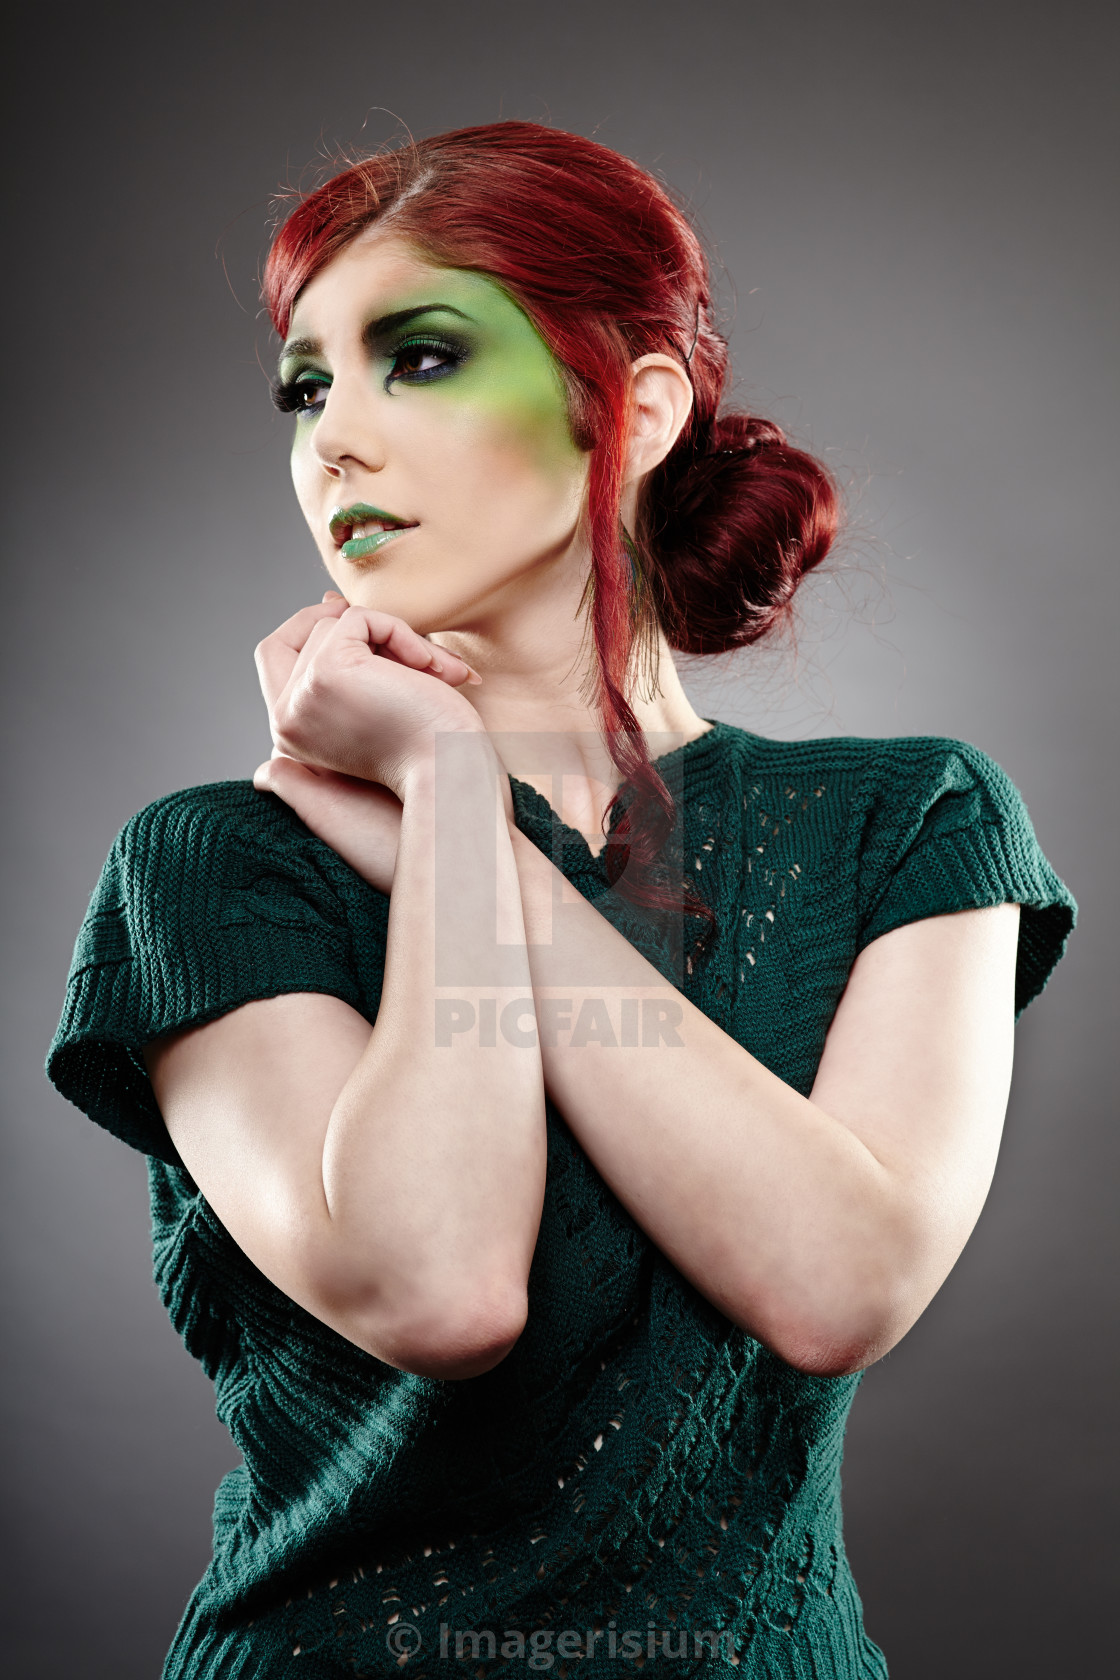 Poison Ivy Makeup License Download Or Print For 14 88 Photos Picfair